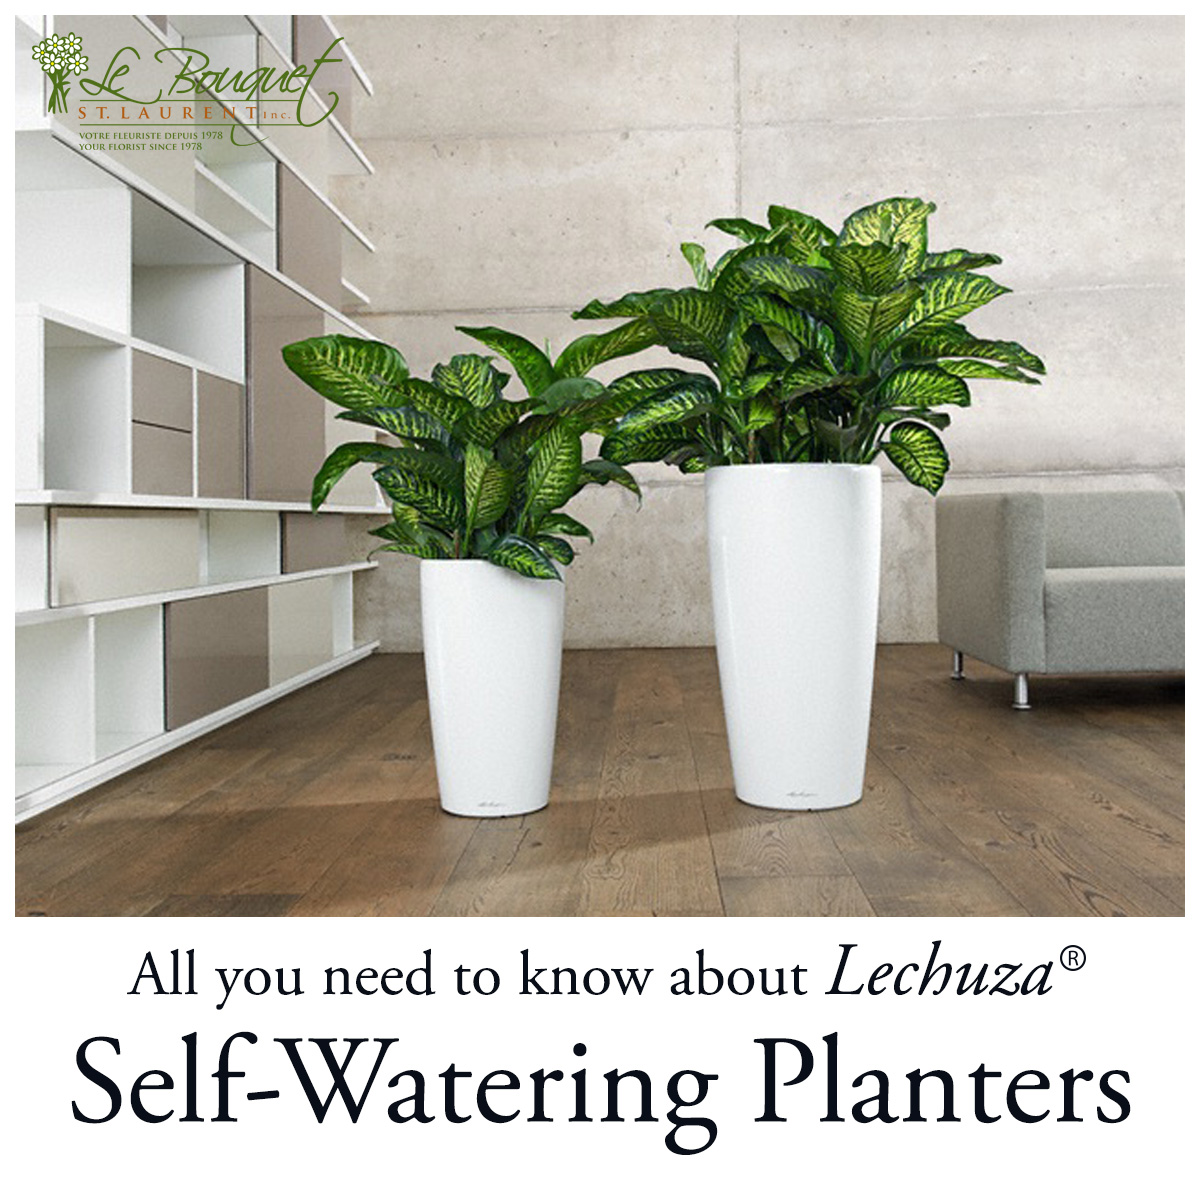 All you need to know about self-watering planters by Le Bouquet St Laurent and Lechuza